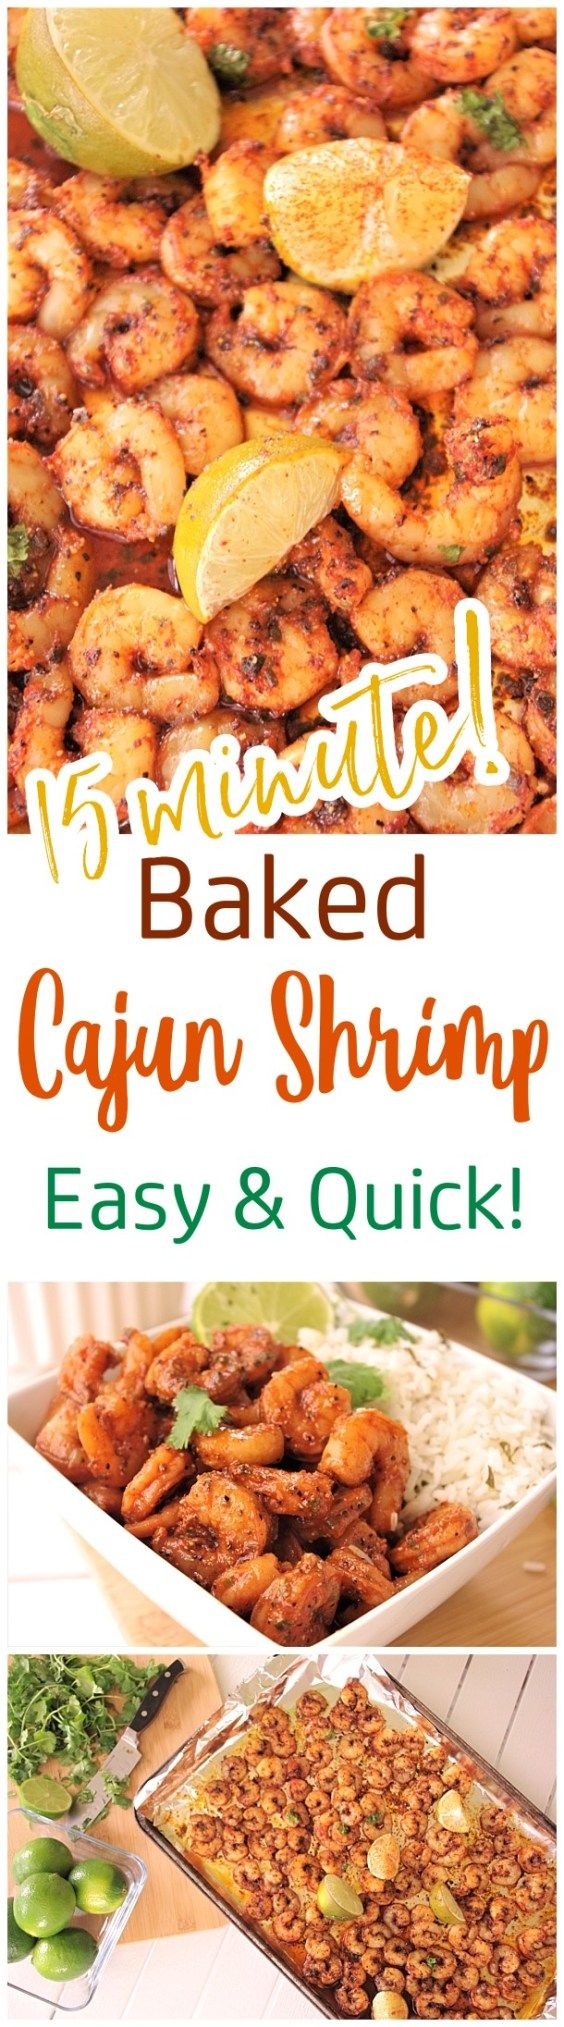 The BEST Sheet Pan Suppers Recipes – Easy and Quick Baked Family Lunch and Simple Dinner Meal Ideas using only ONE Baking Sheet PAN!